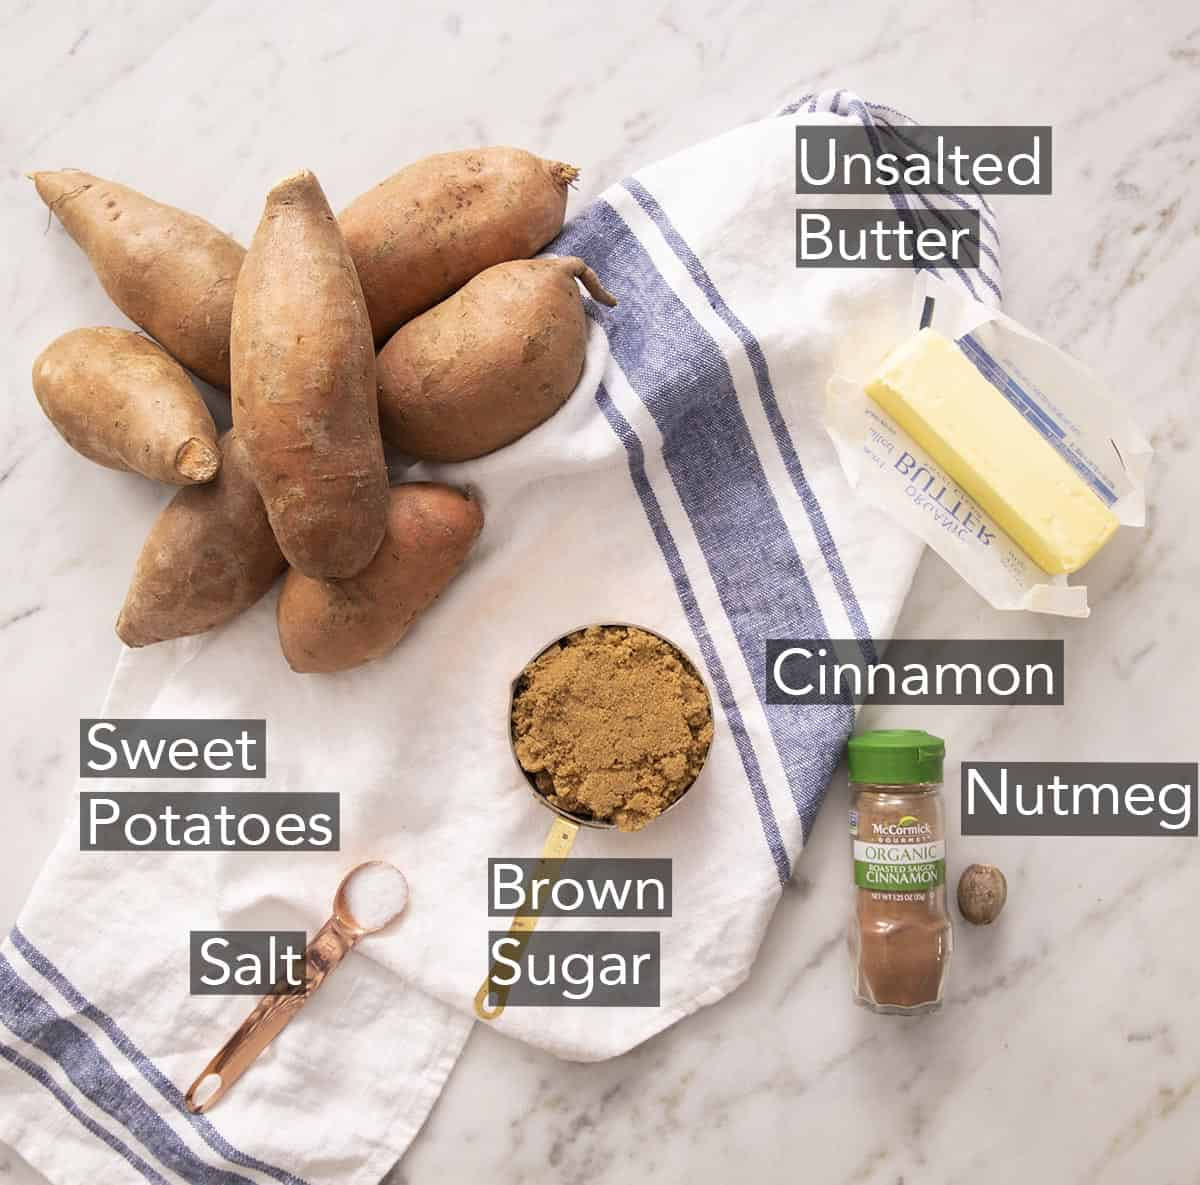 Ingredients for making candied yams on a marble counter.